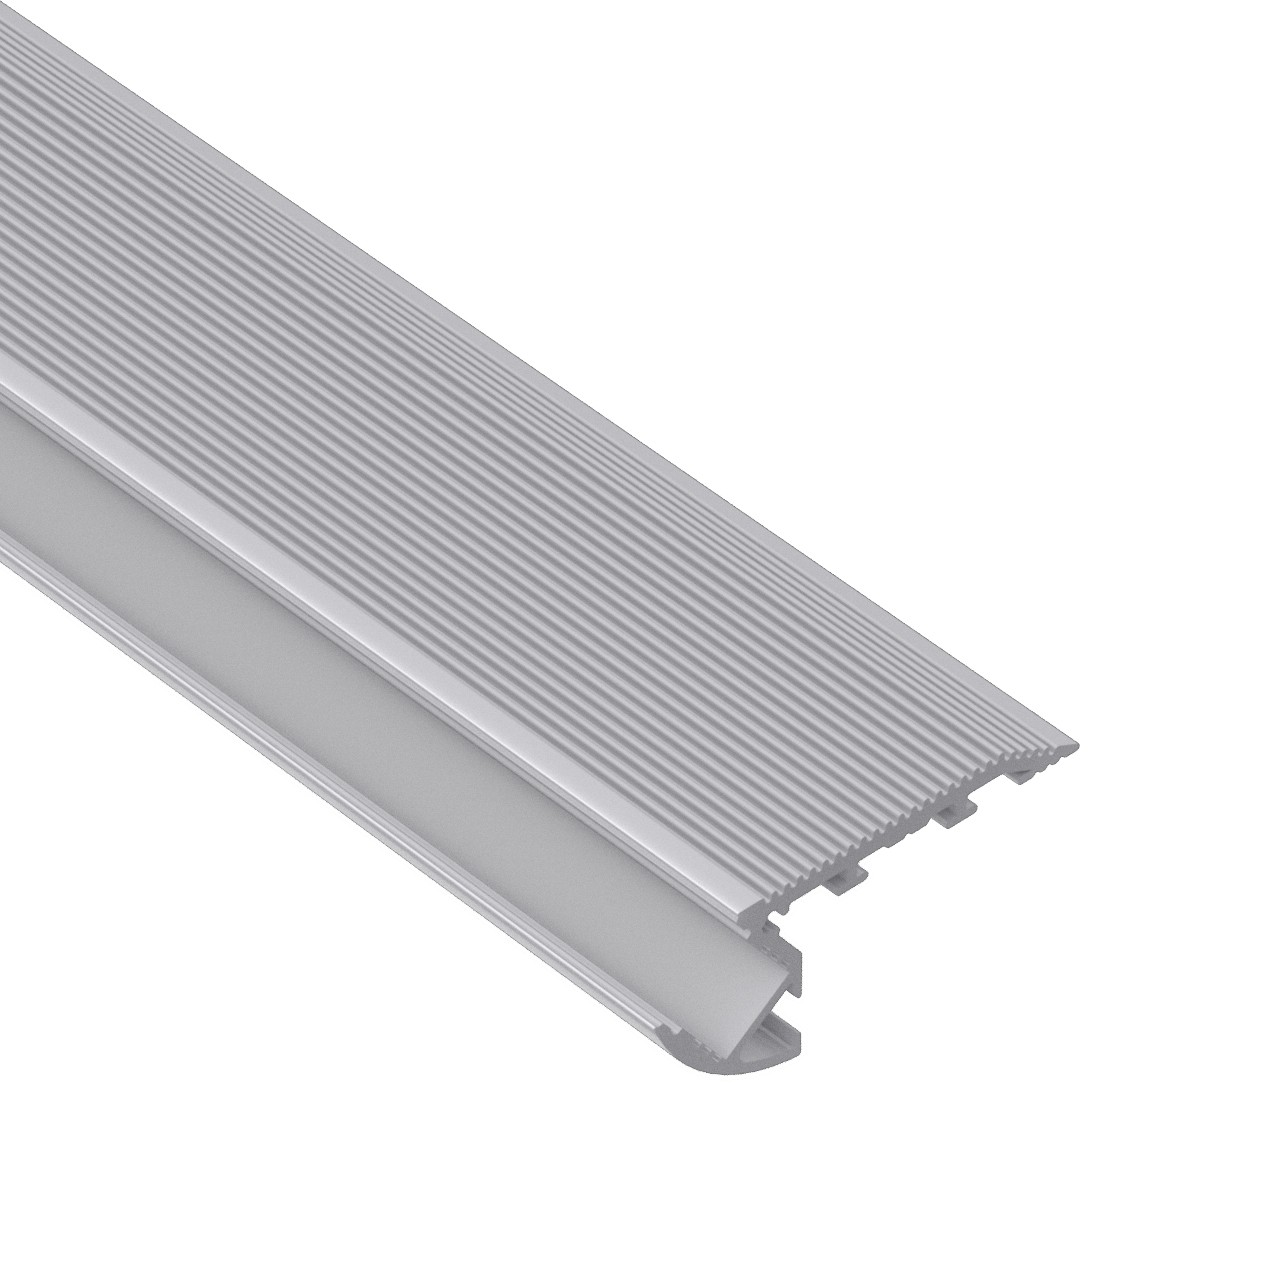 ST1 Stair nosing led profile uplight for led strip 67.5x27.8mm